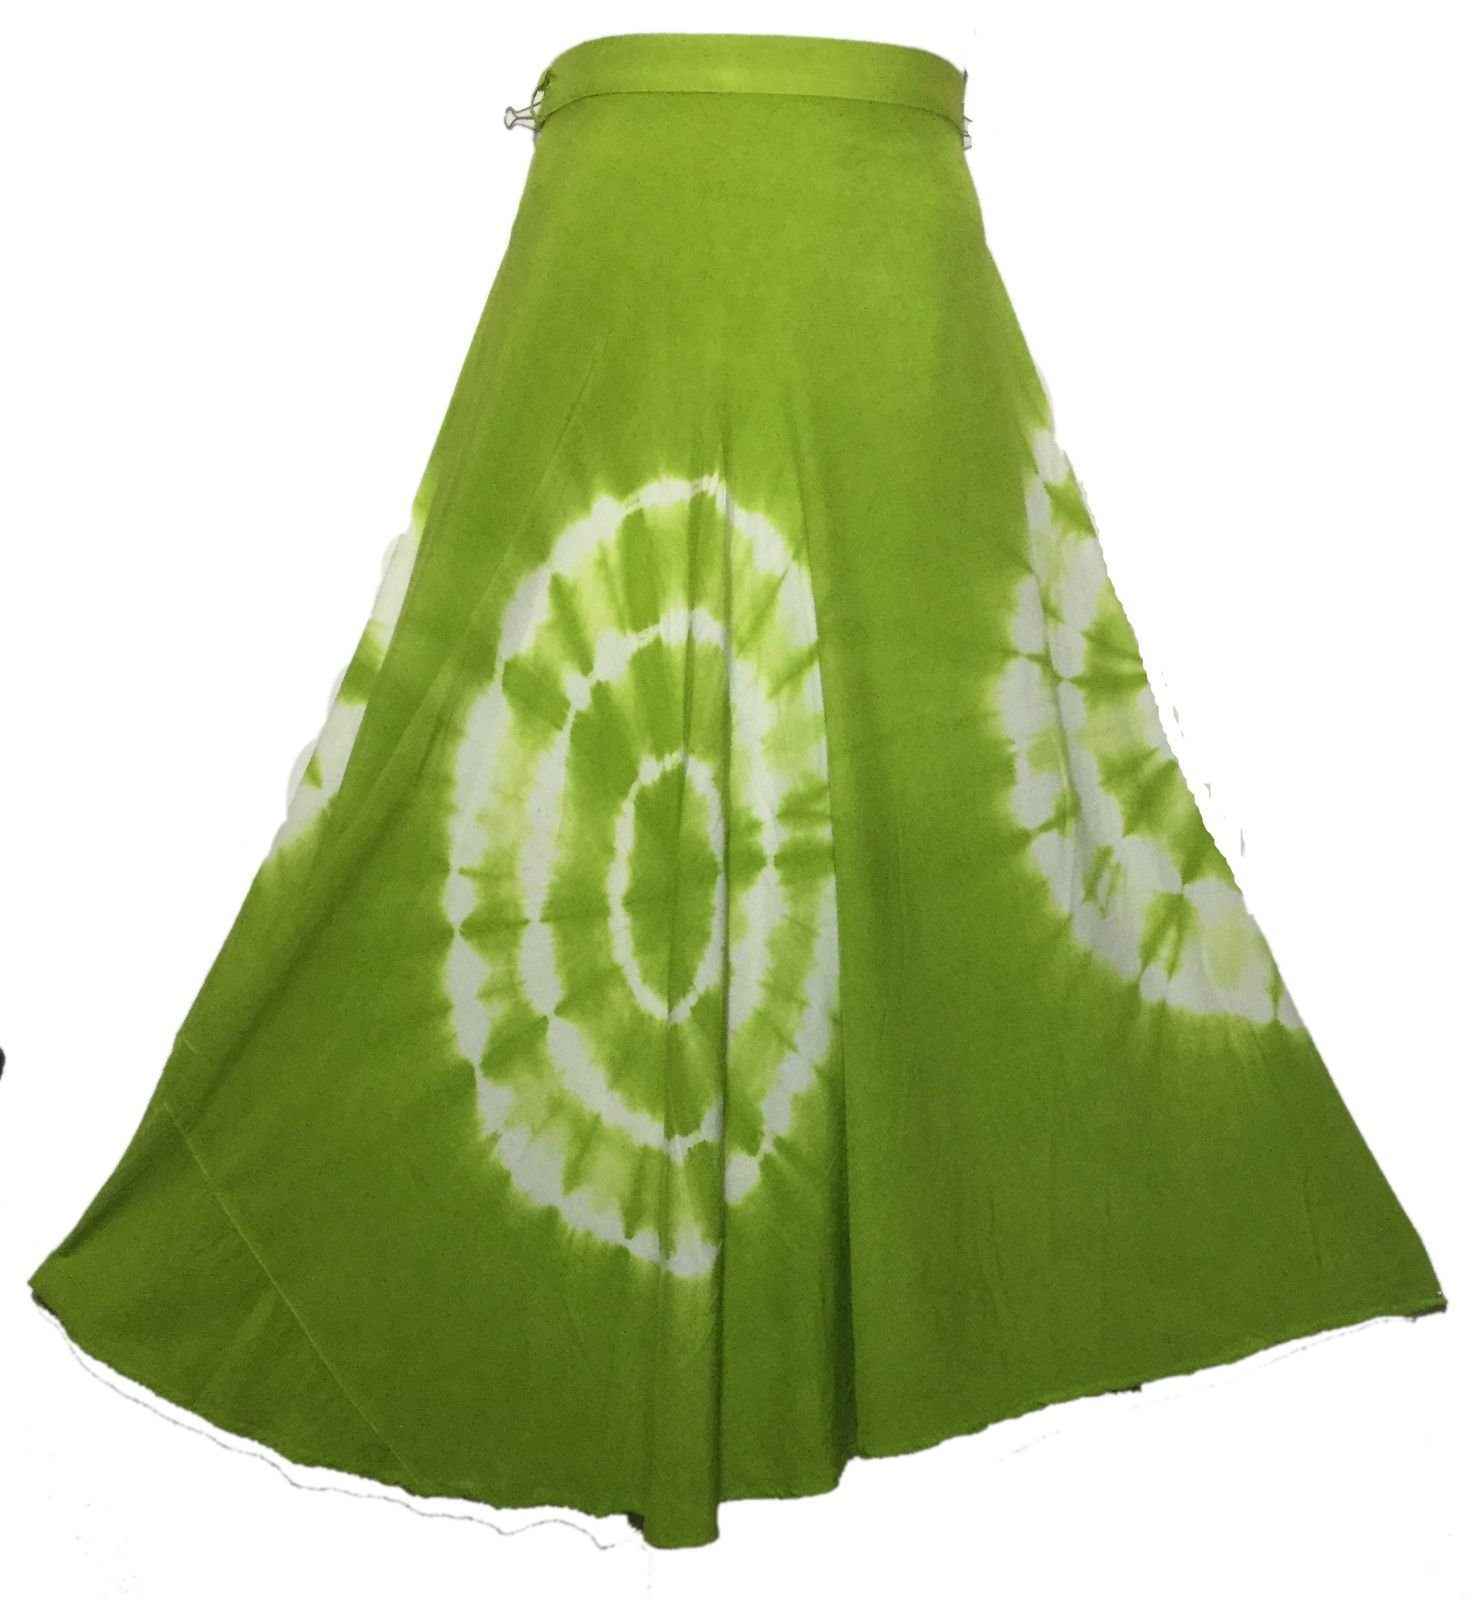 Decoraapparel Tiedye Wrap Around Skirts African Wax Print Women's Flared Skirt Cotton Maxi Bright Colors